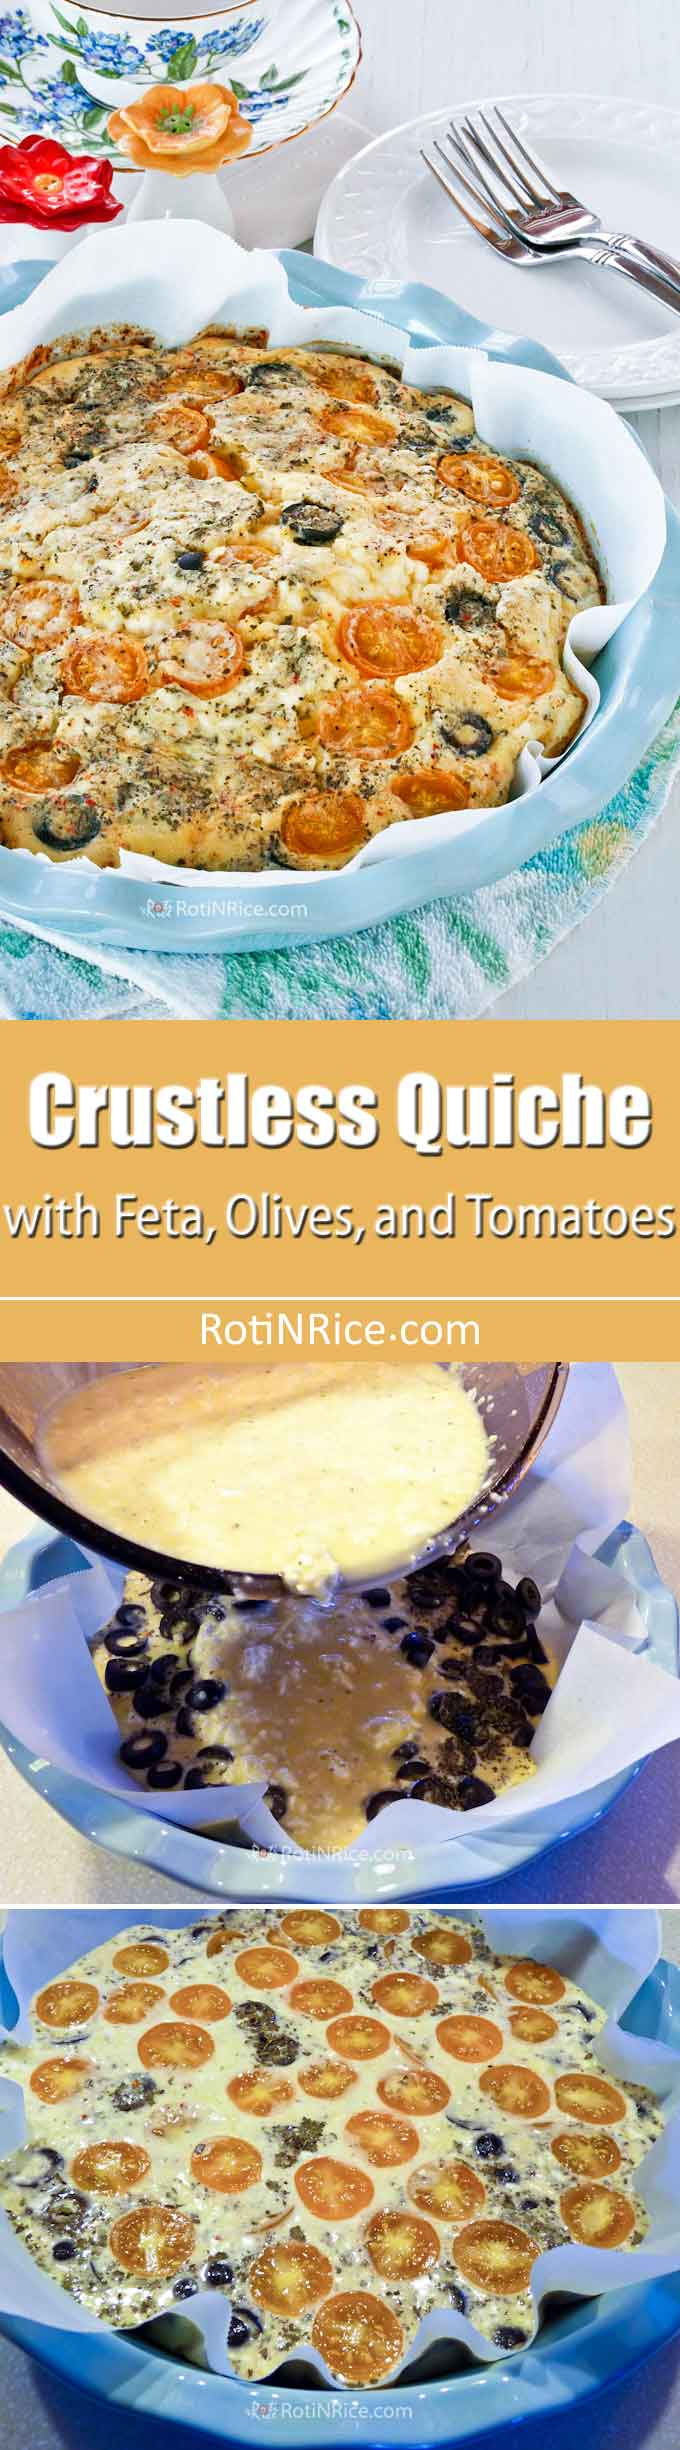 Treat your family to this creamy and fluffy Crustless Quiche with Feta, Olives, and Tomatoes. There is minimum prep time involved and it can feed up to 8. | RotiNRice.com